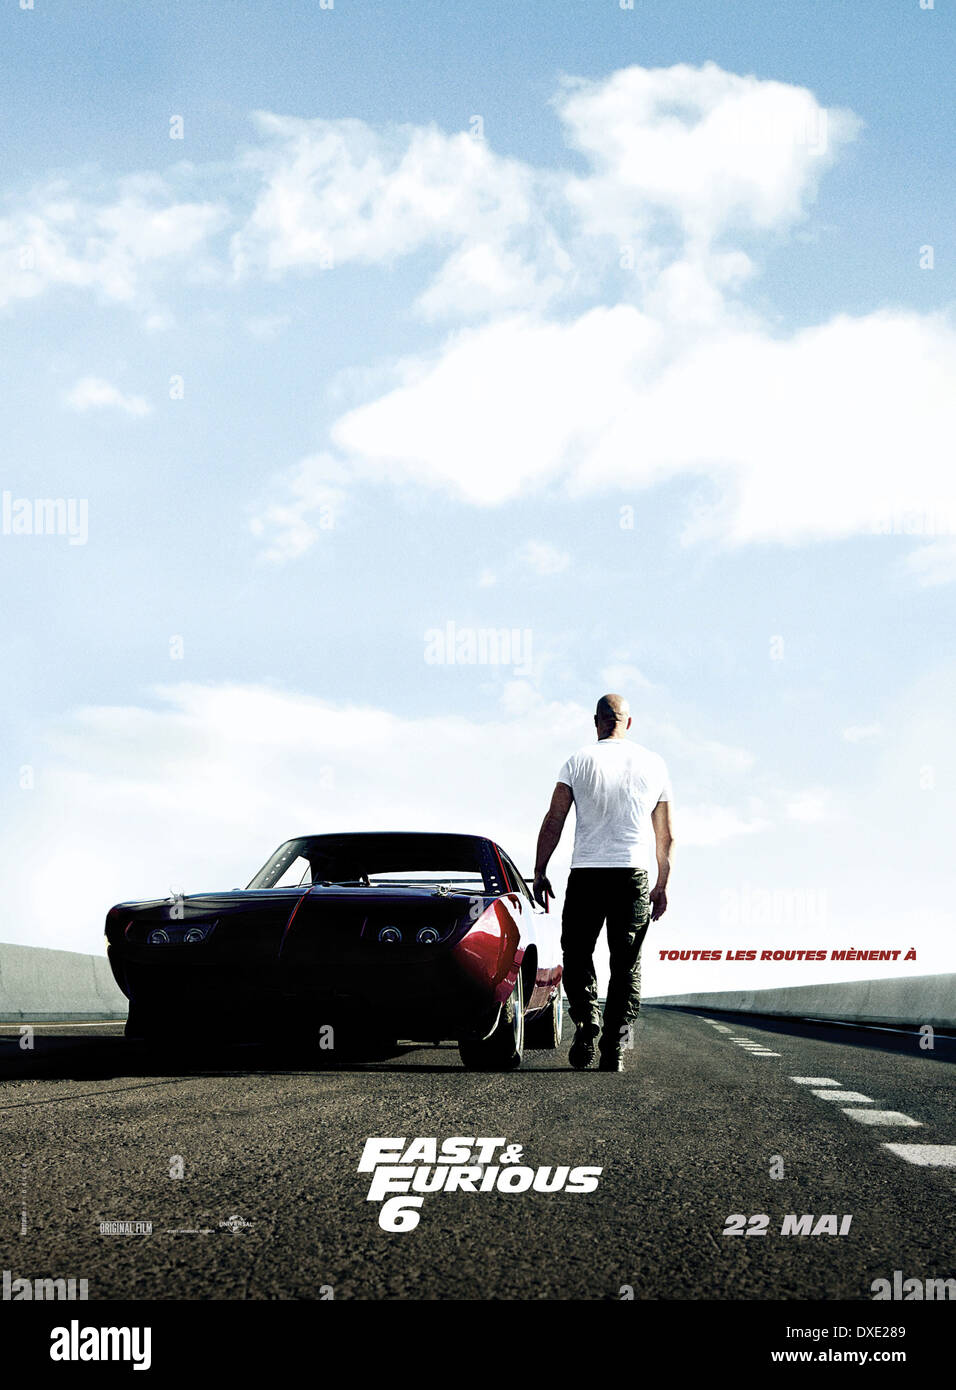 Fast & Furious 6 Stock Photo